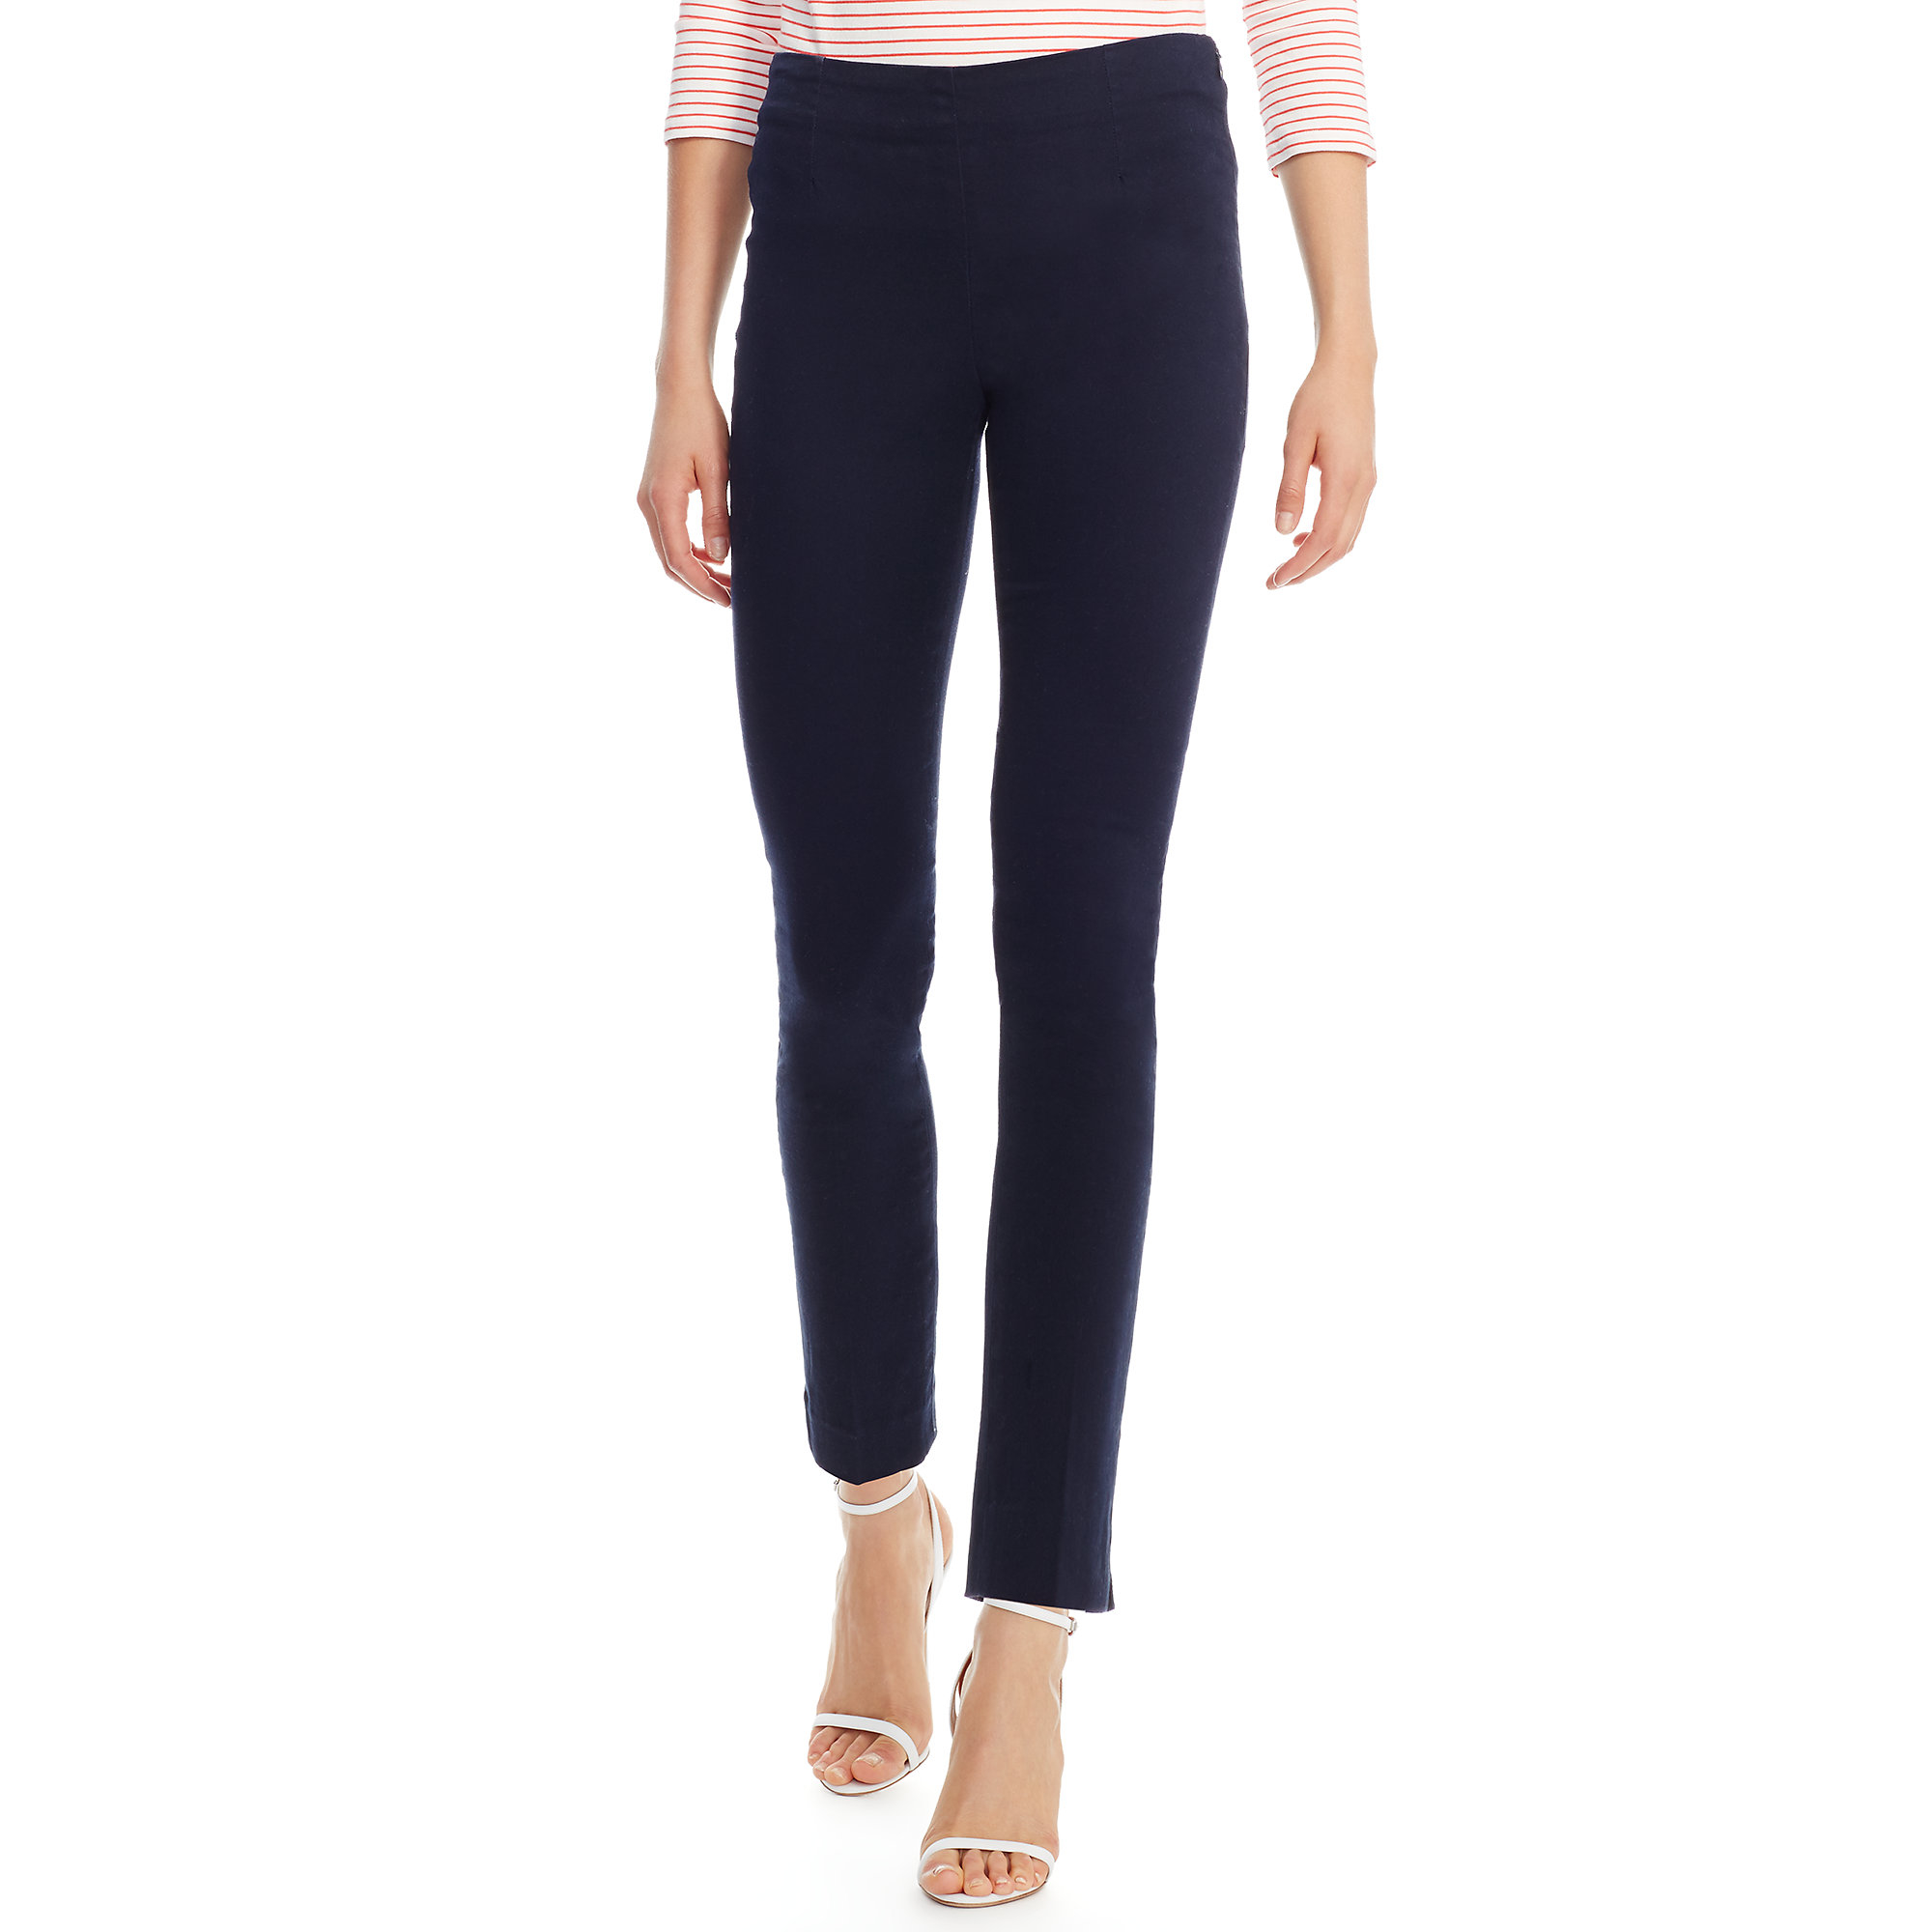 83305978d6864 Lyst - Polo Ralph Lauren Stretch Cotton Skinny Pant in Blue